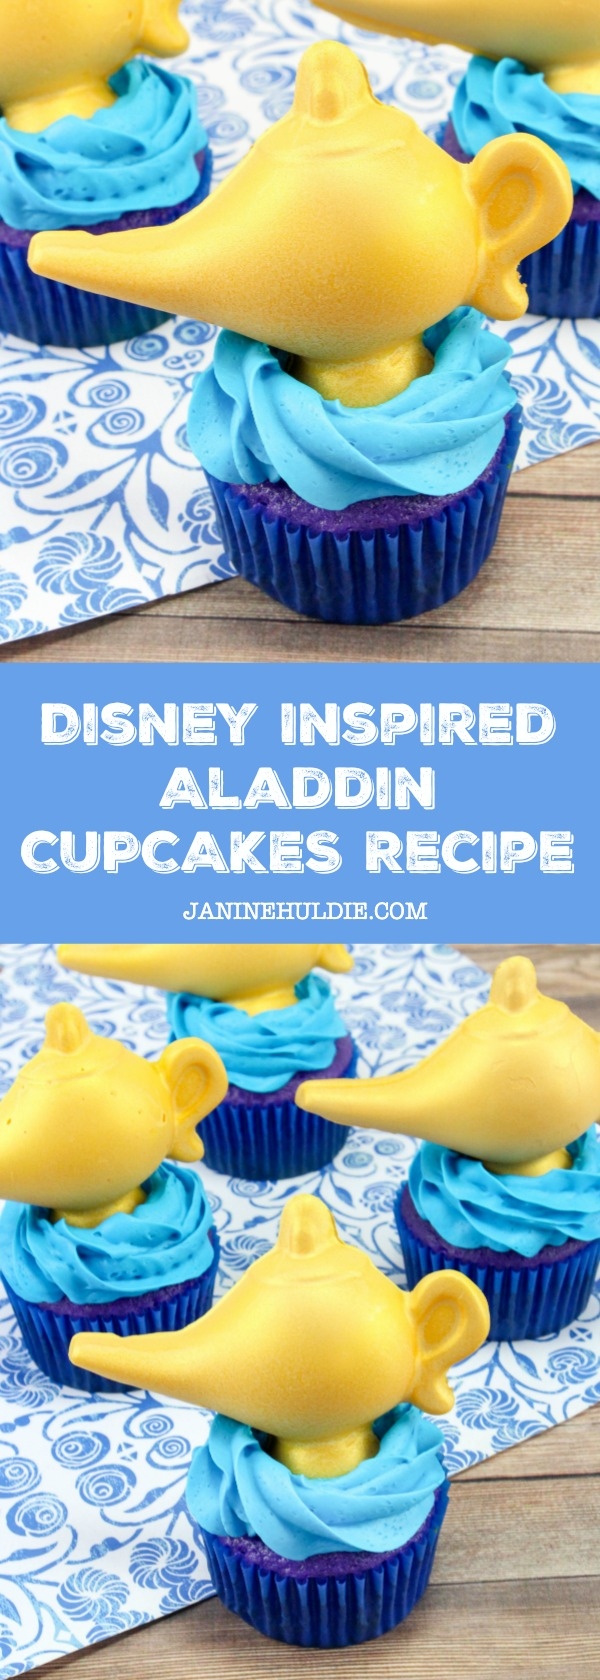 Disney Inspired Aladdin Cupcakes Recipe